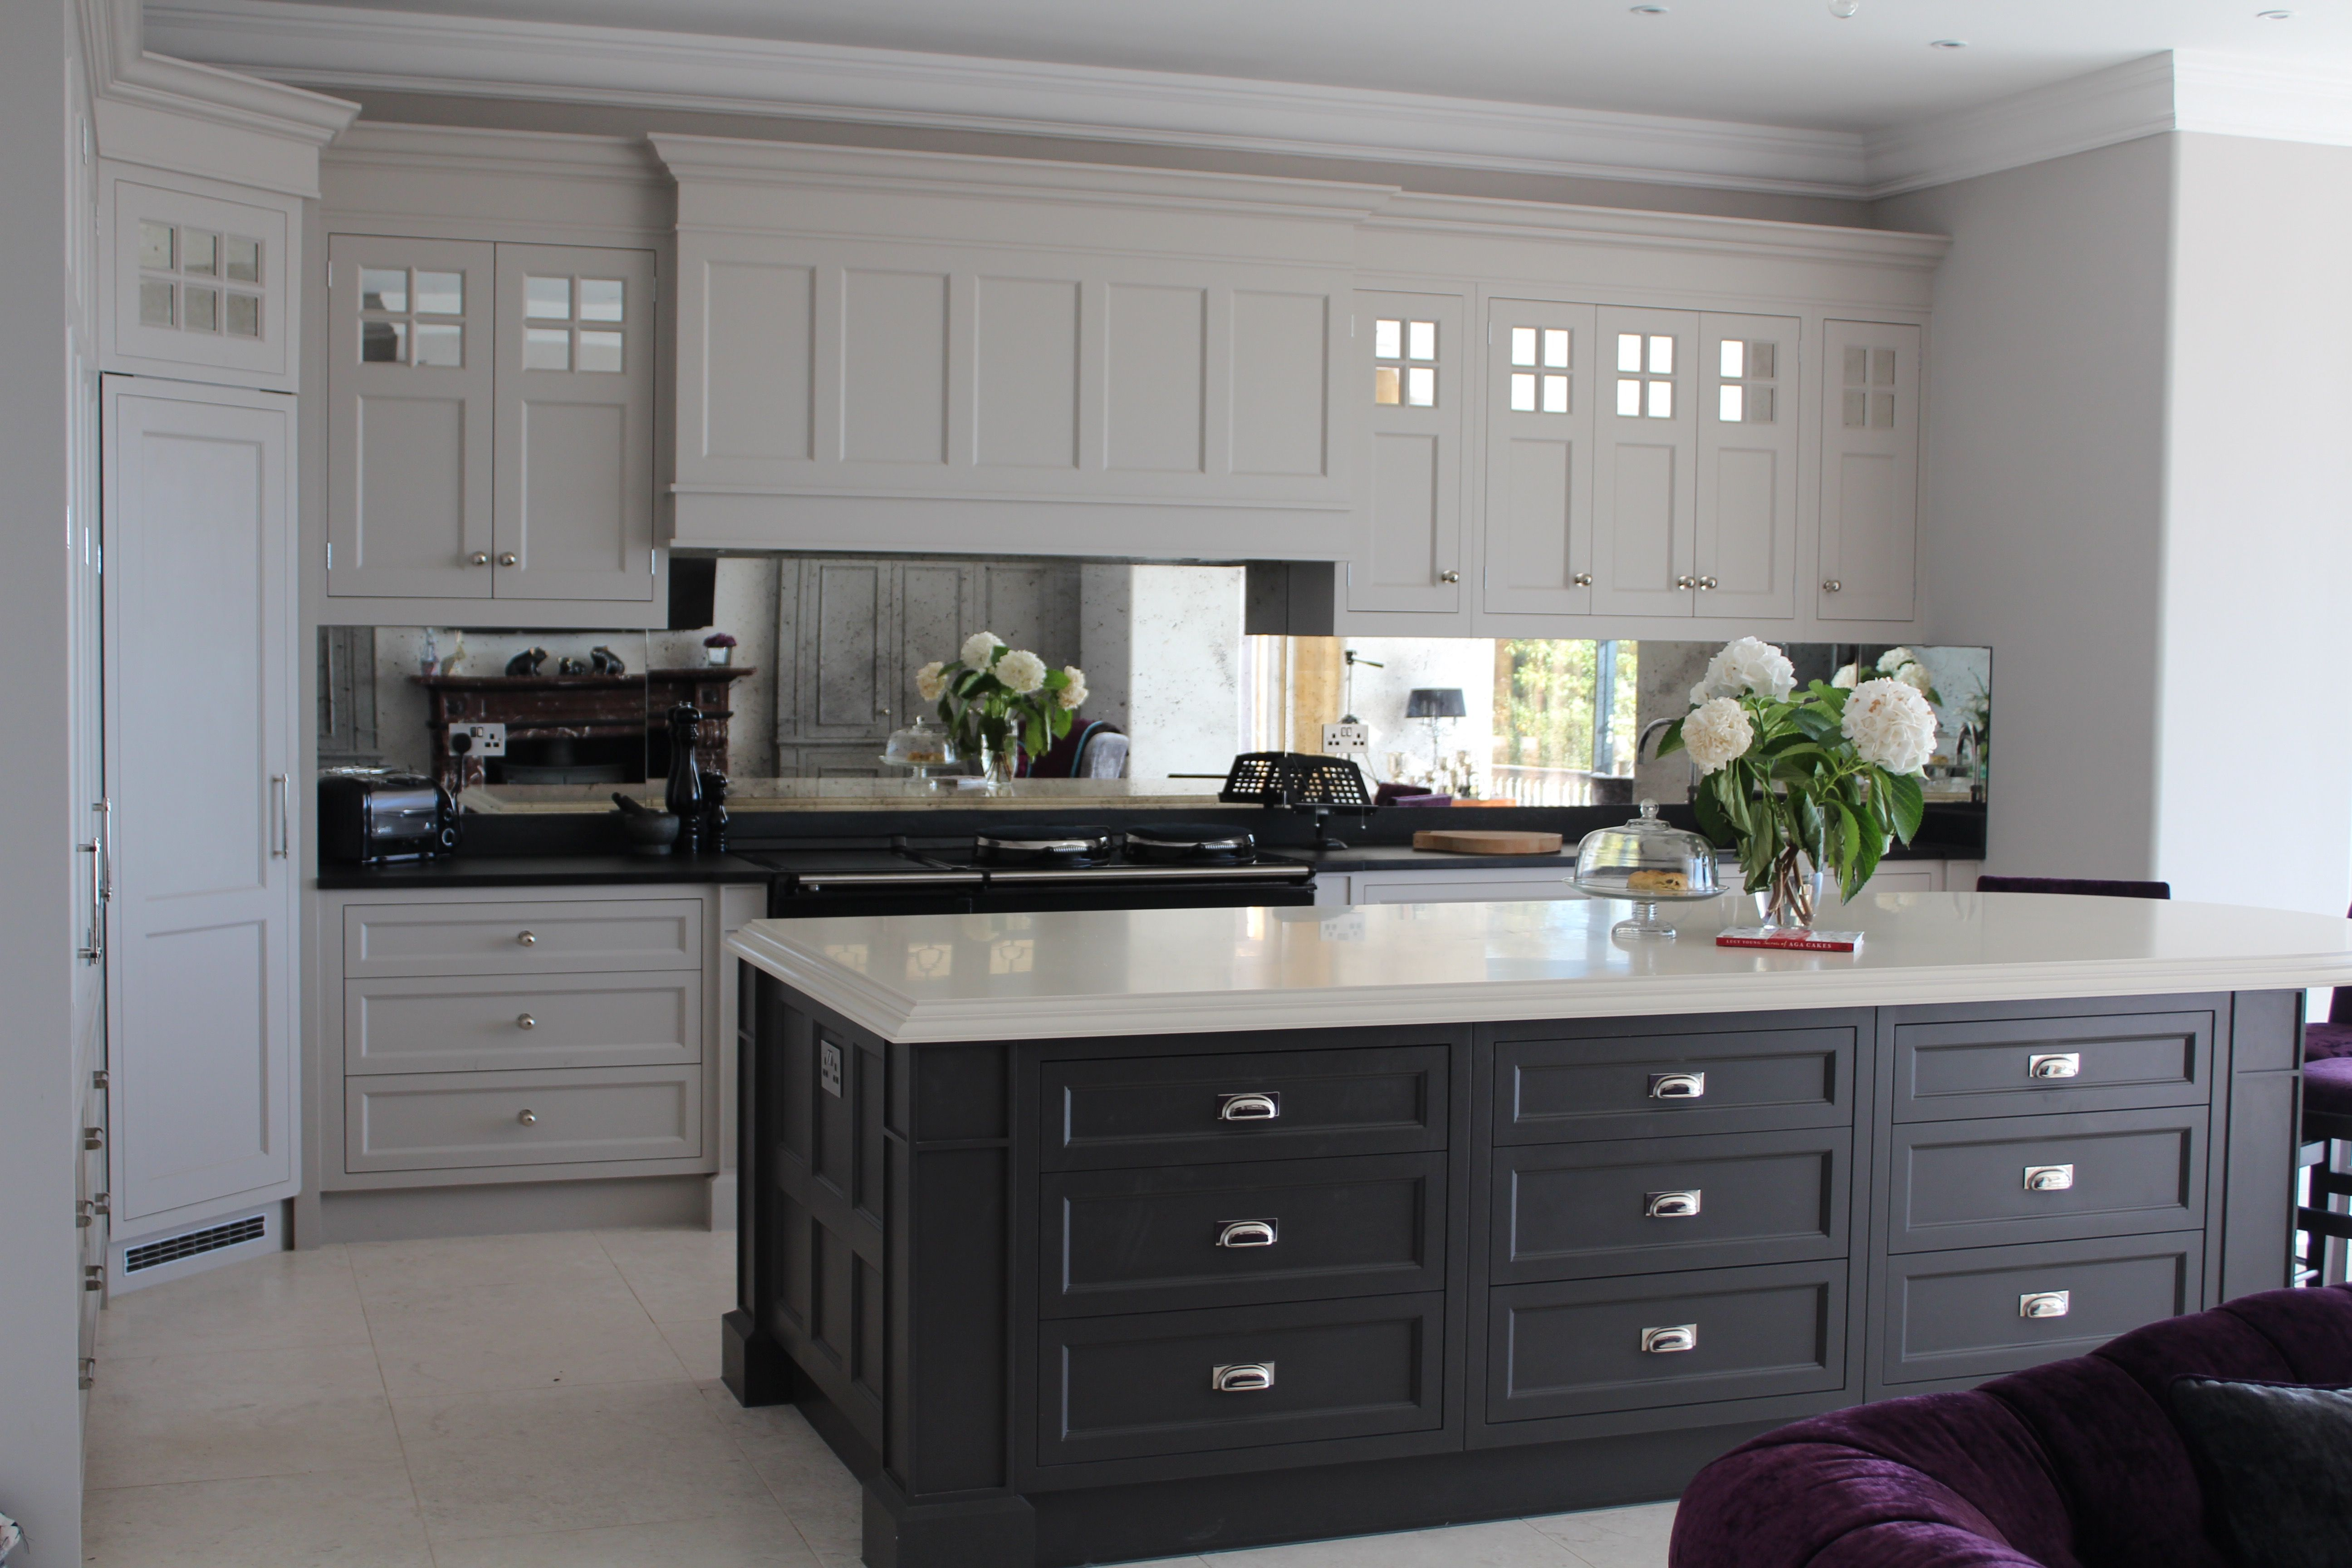 Kitchen By Vicky Watson For Richard Baker Furniture